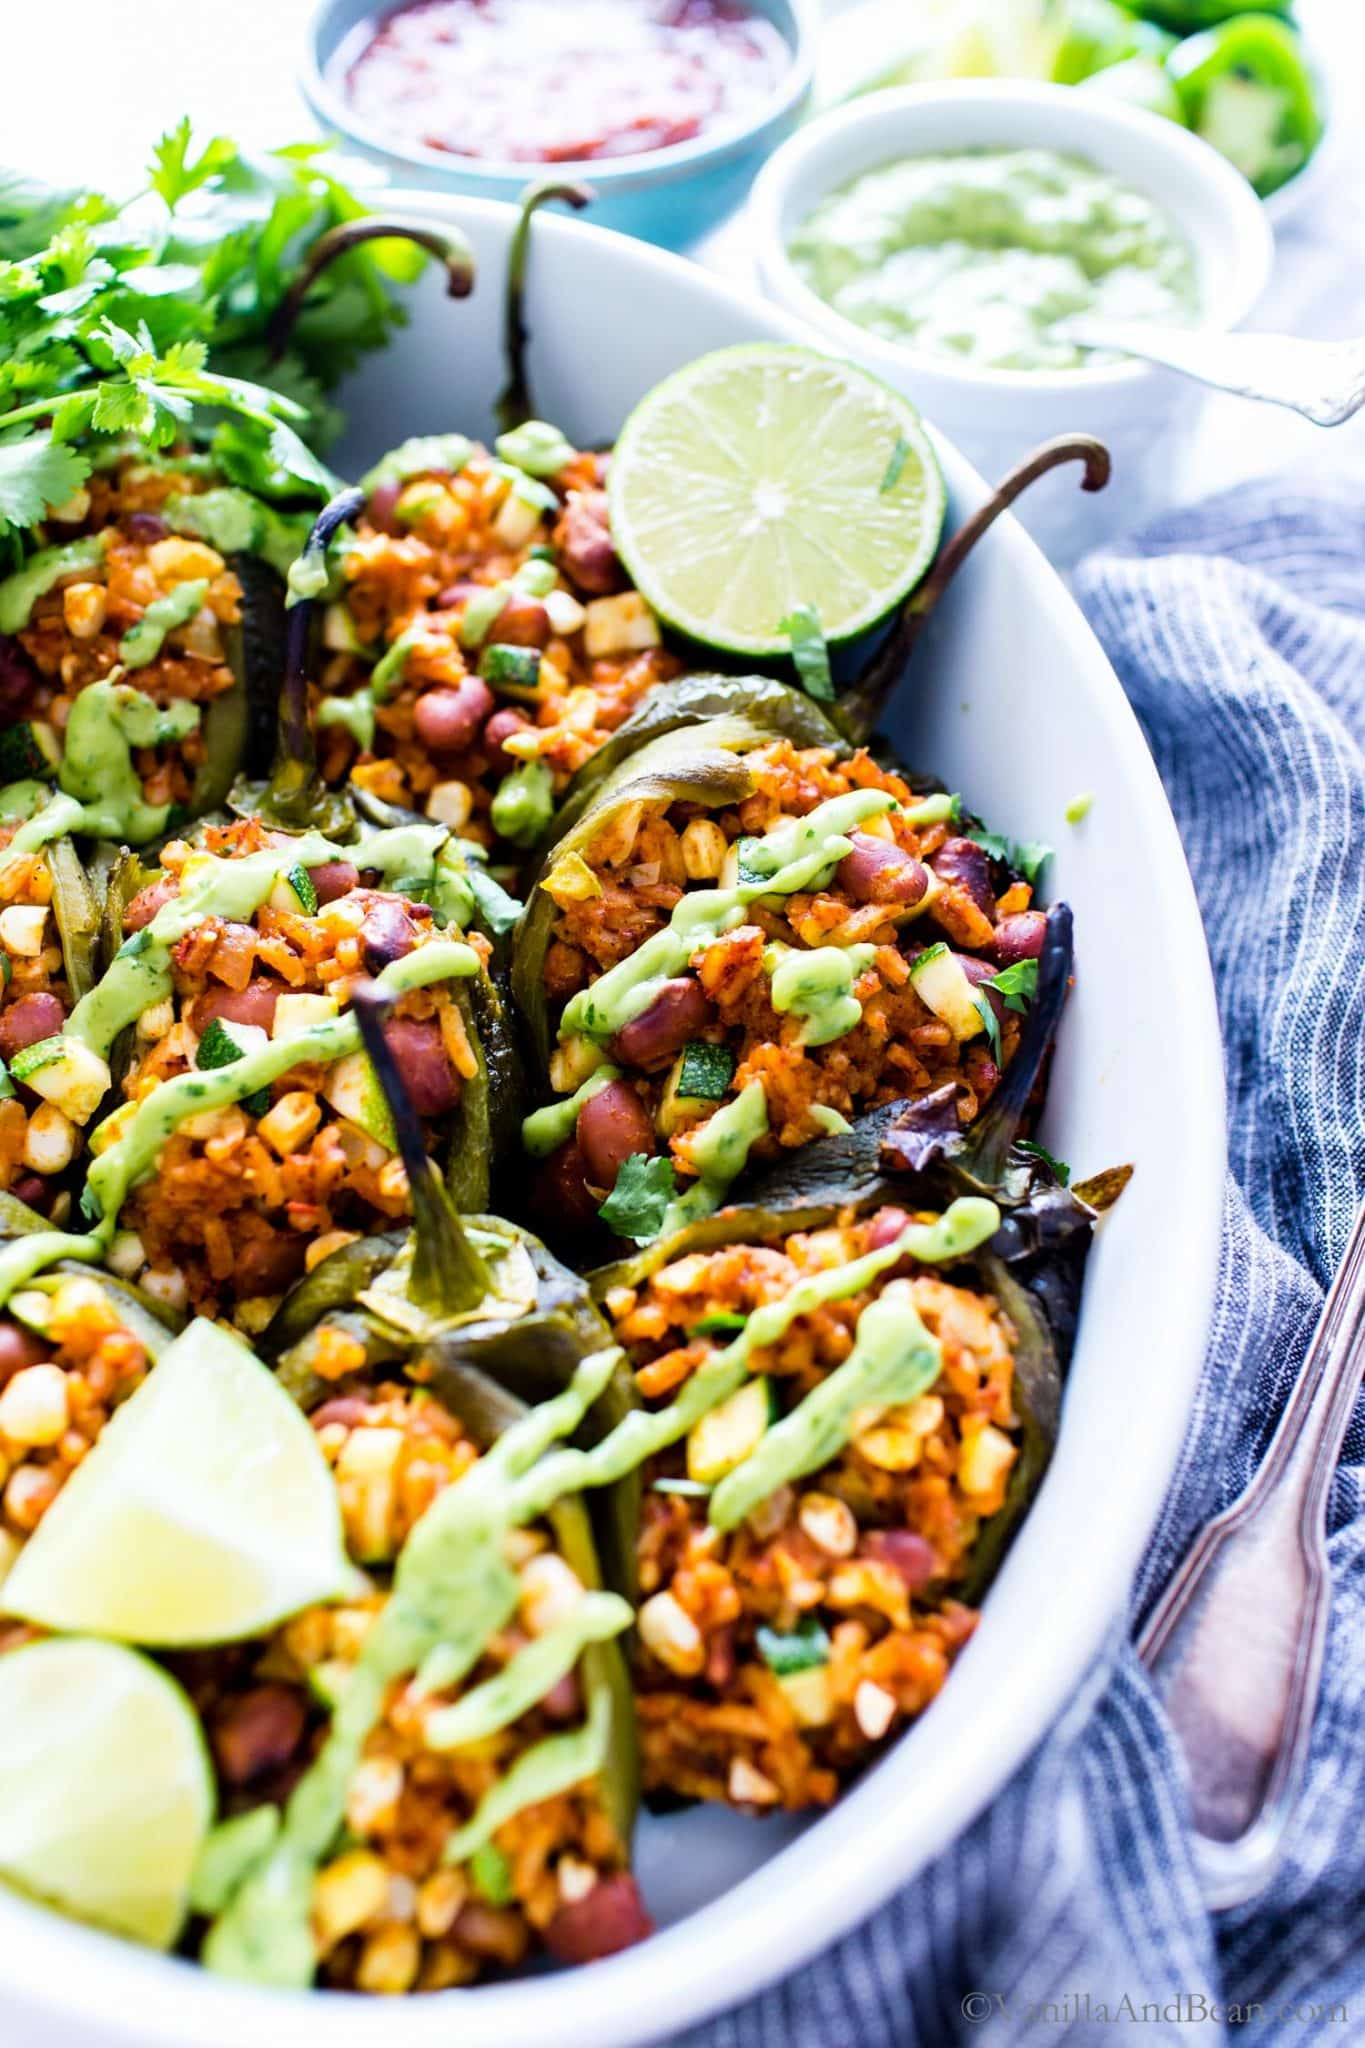 Stuffed Poblano Peppers in a roasting dish with avocado cream drizzled over the top.